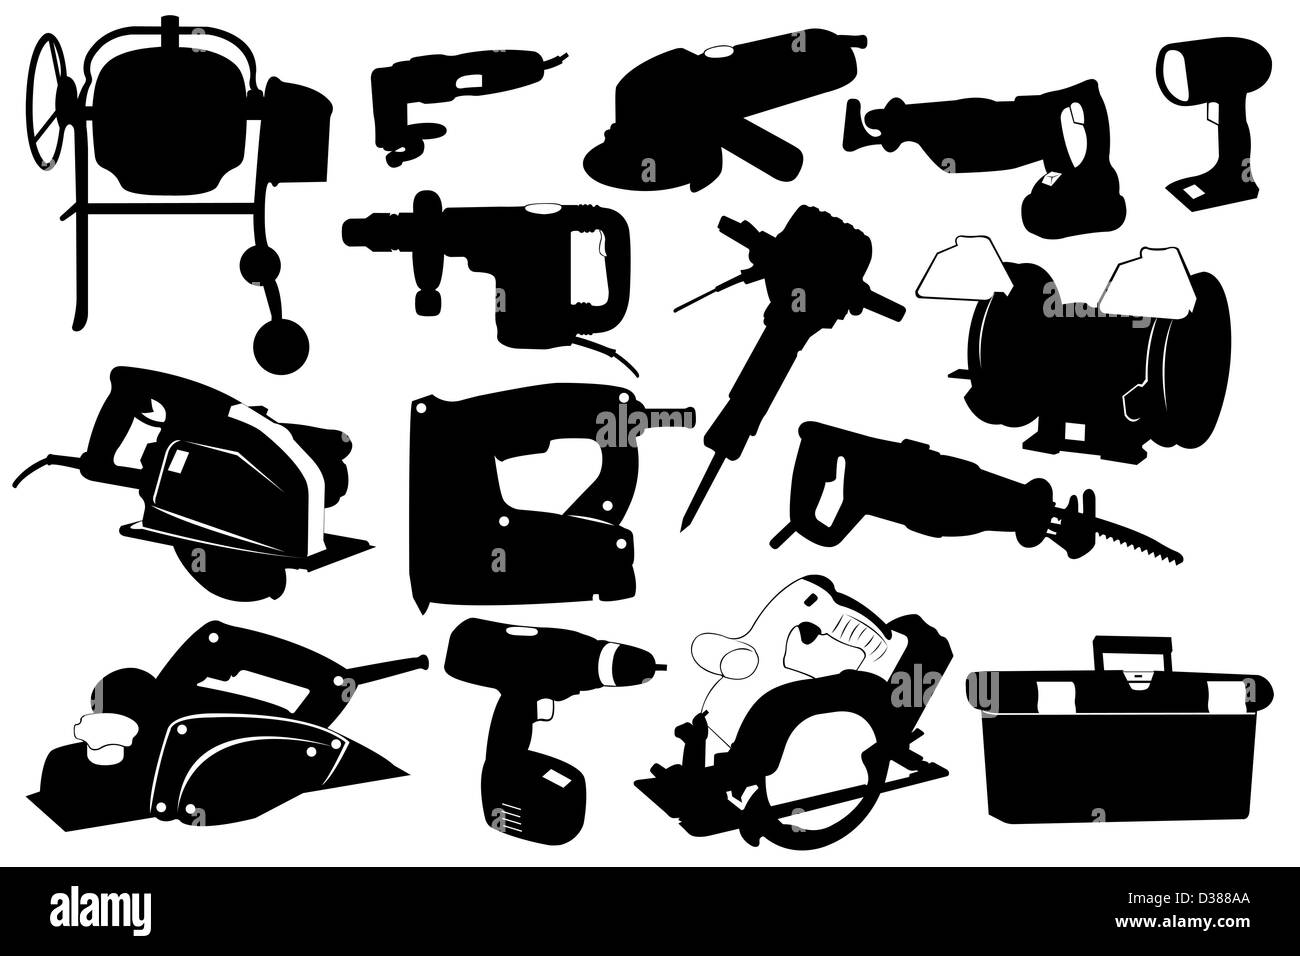 Electric Tools - Stock Image